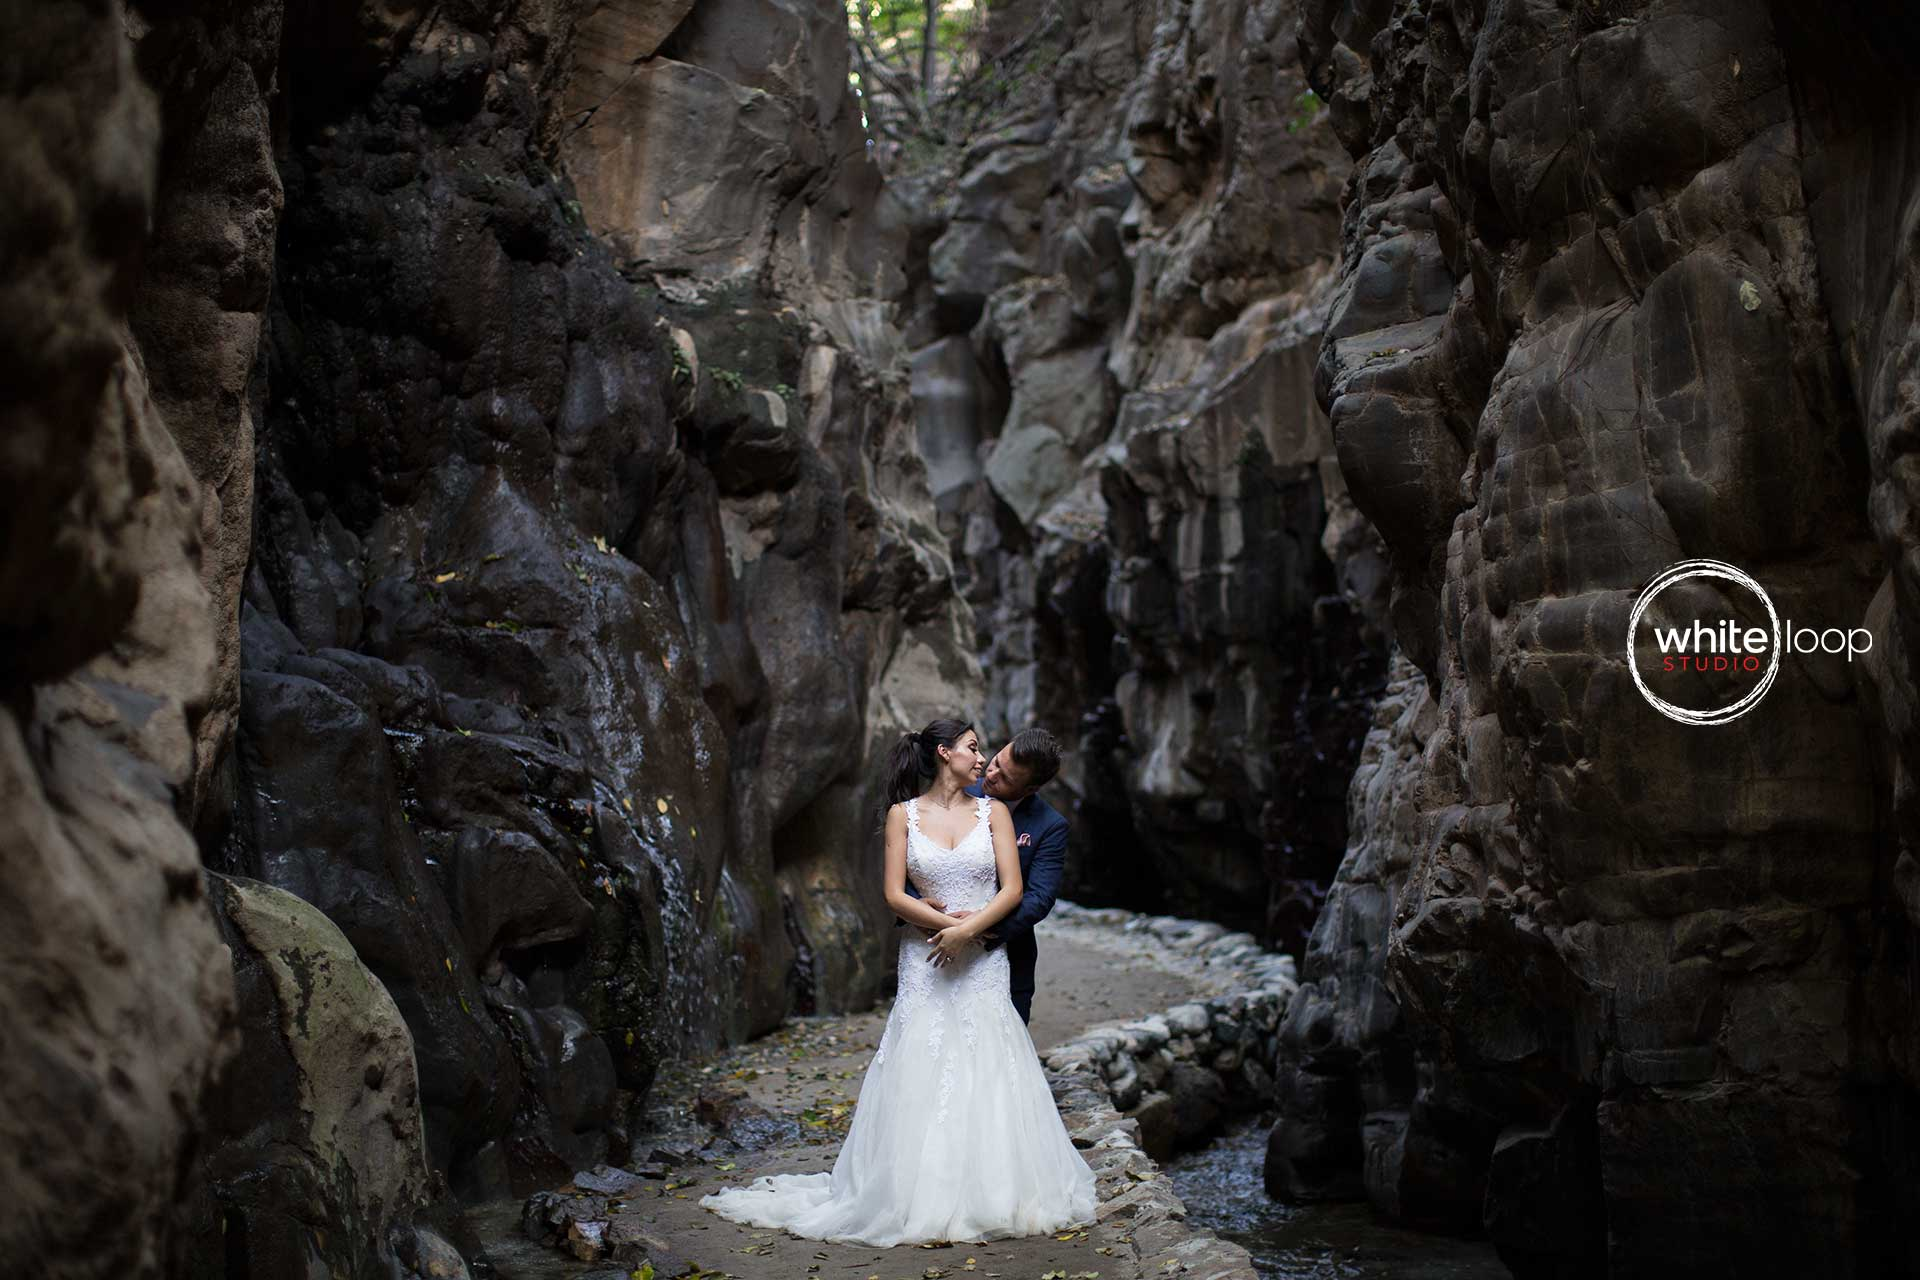 The couple is holding each other in the middle of Mexican canyon, while water is falling down and refreshing the atmosphere.